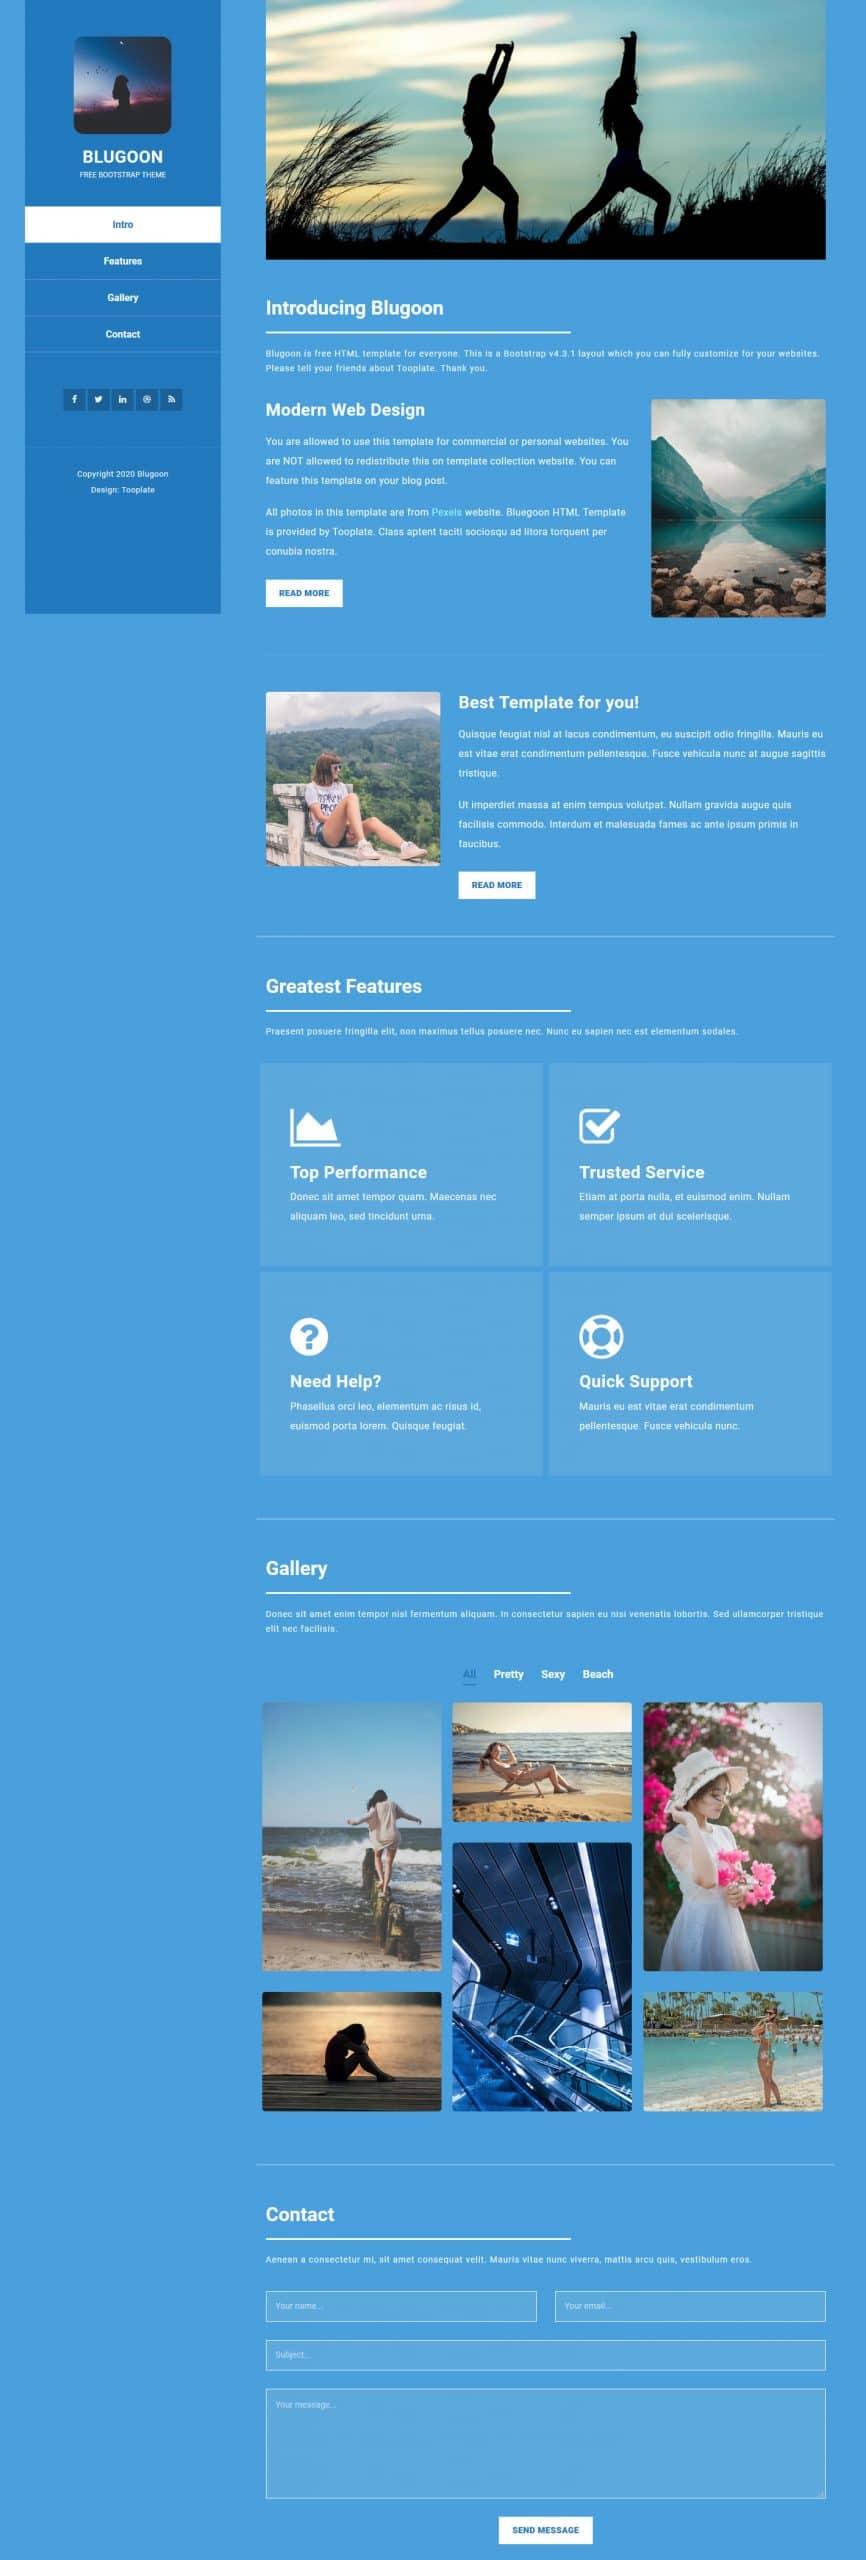 Blugoon - one-page layout HTML template